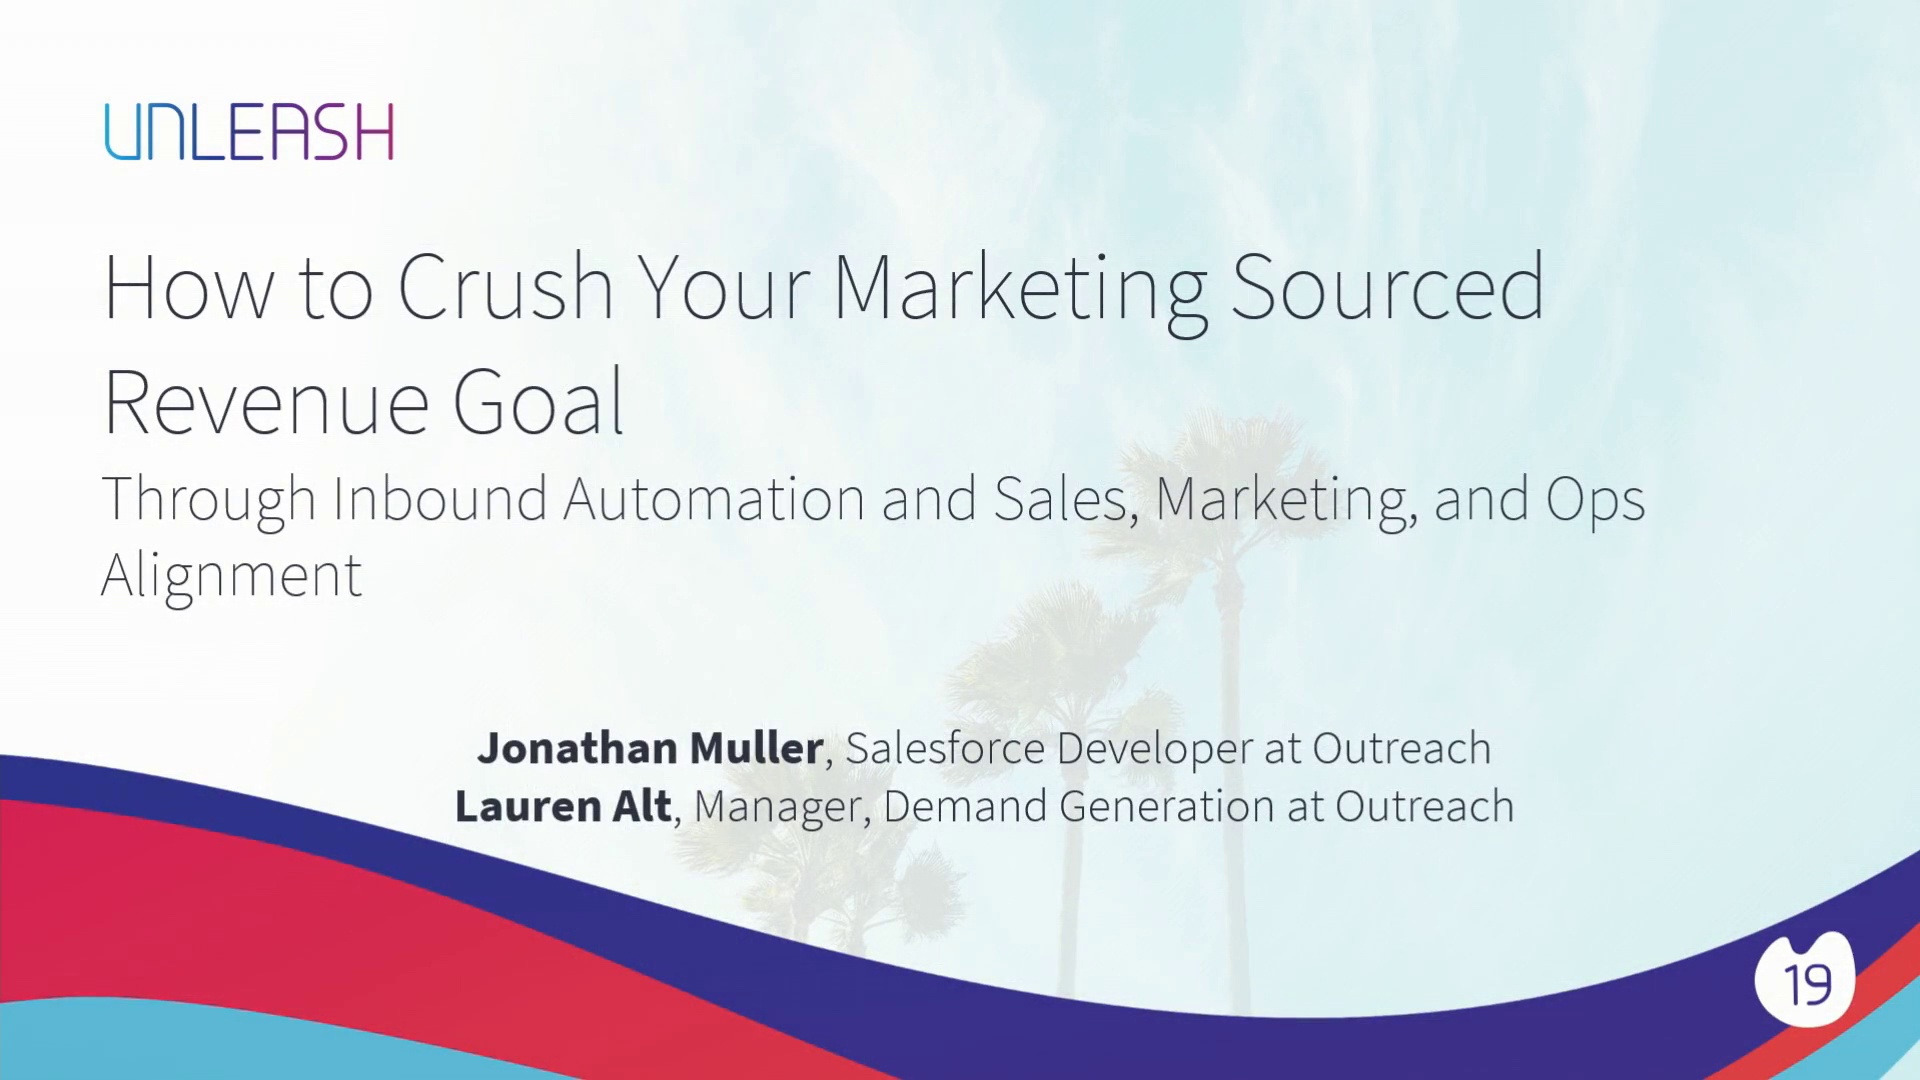 How to Crush your Marketing-Sourced Revenue Goal Through Inbound Automation and Sales, Marketing, and Ops Alignment - Jonathan Muller, Lauren Alt